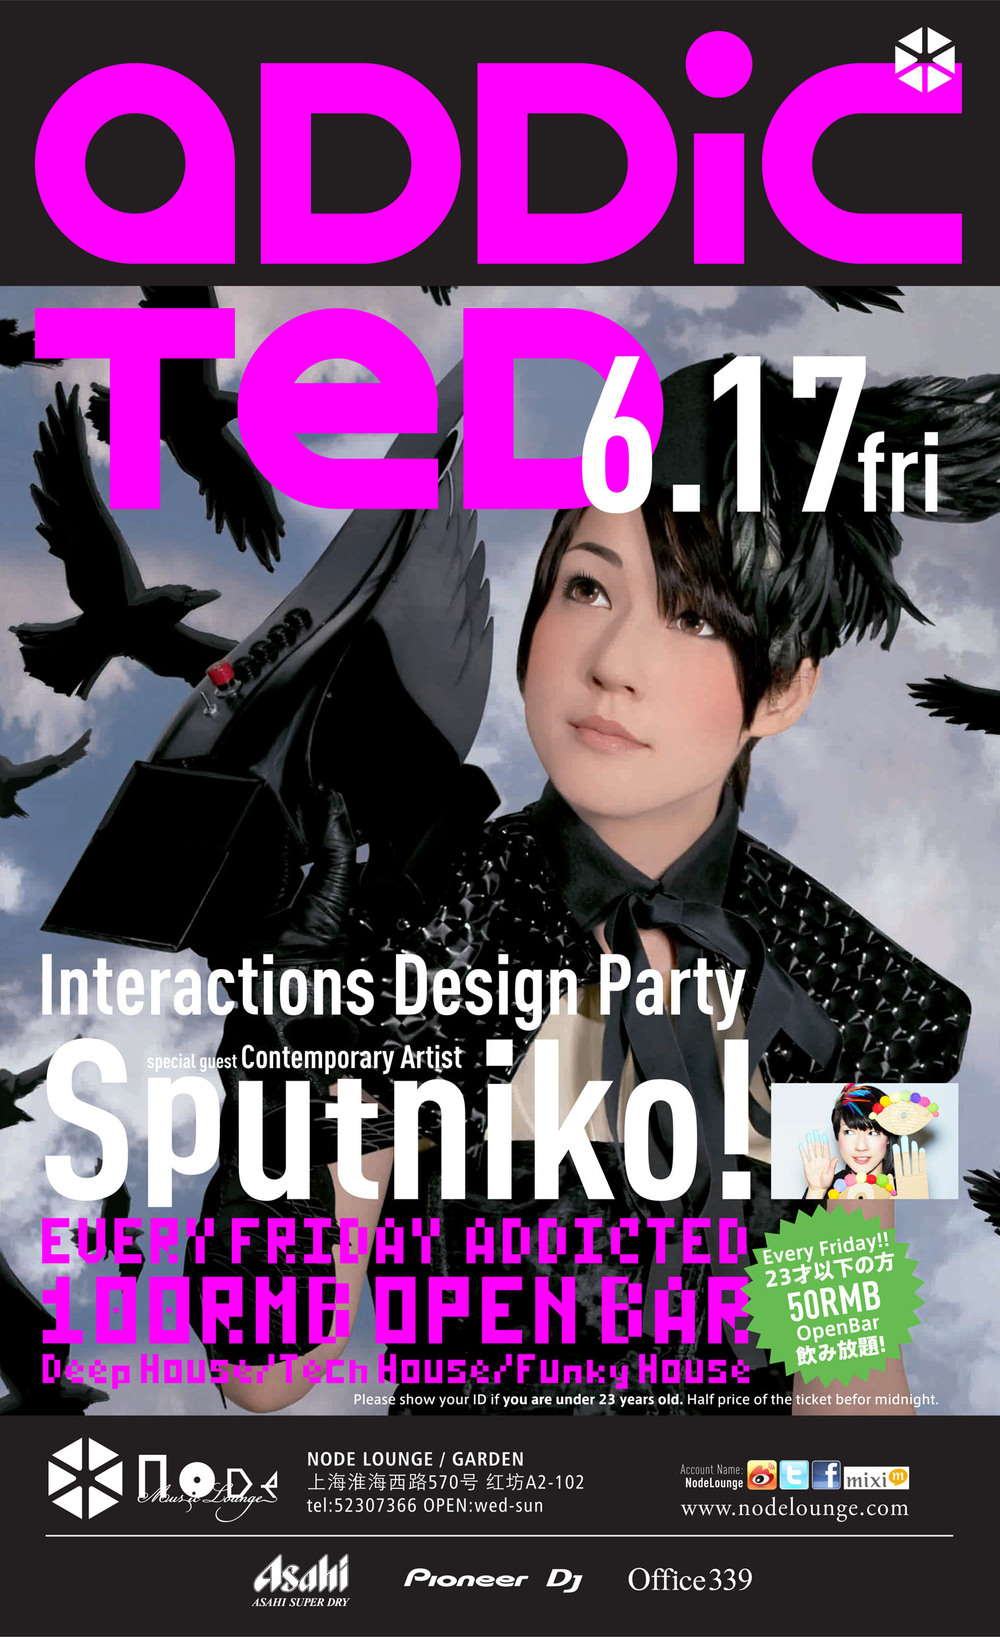 Sputniko! performs as special VJ guests!!